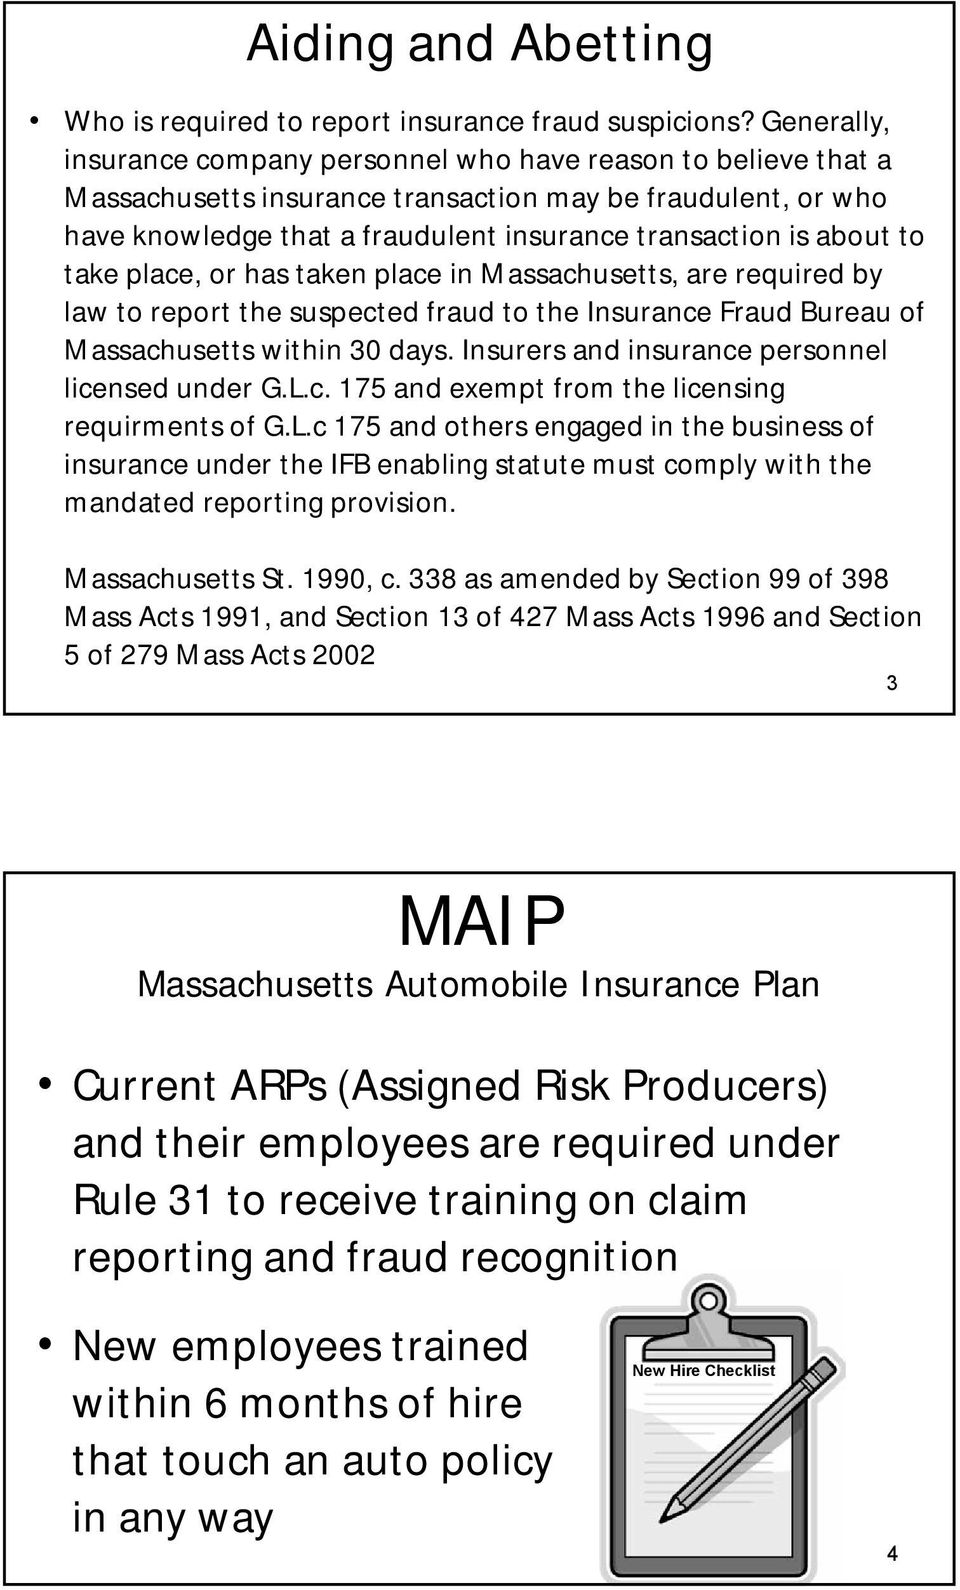 to take place, or has taken place in Massachusetts, are required by law to report the suspected fraud to the Insurance Fraud Bureau of Massachusetts within 30 days.